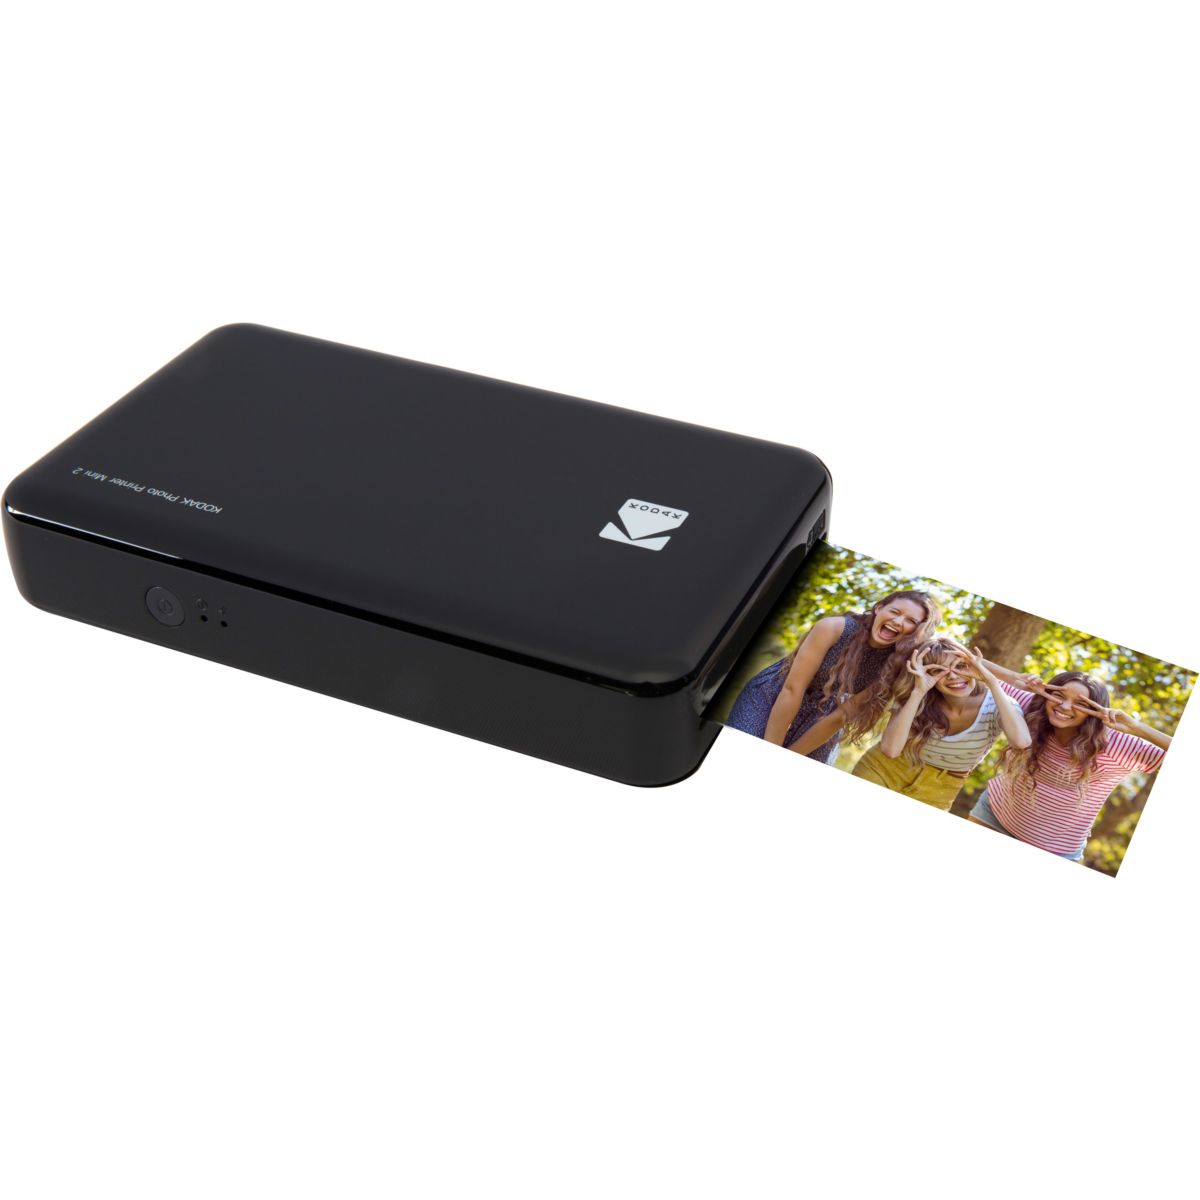 Imprimante photo portable KODAK Mobile Print 2 Noire